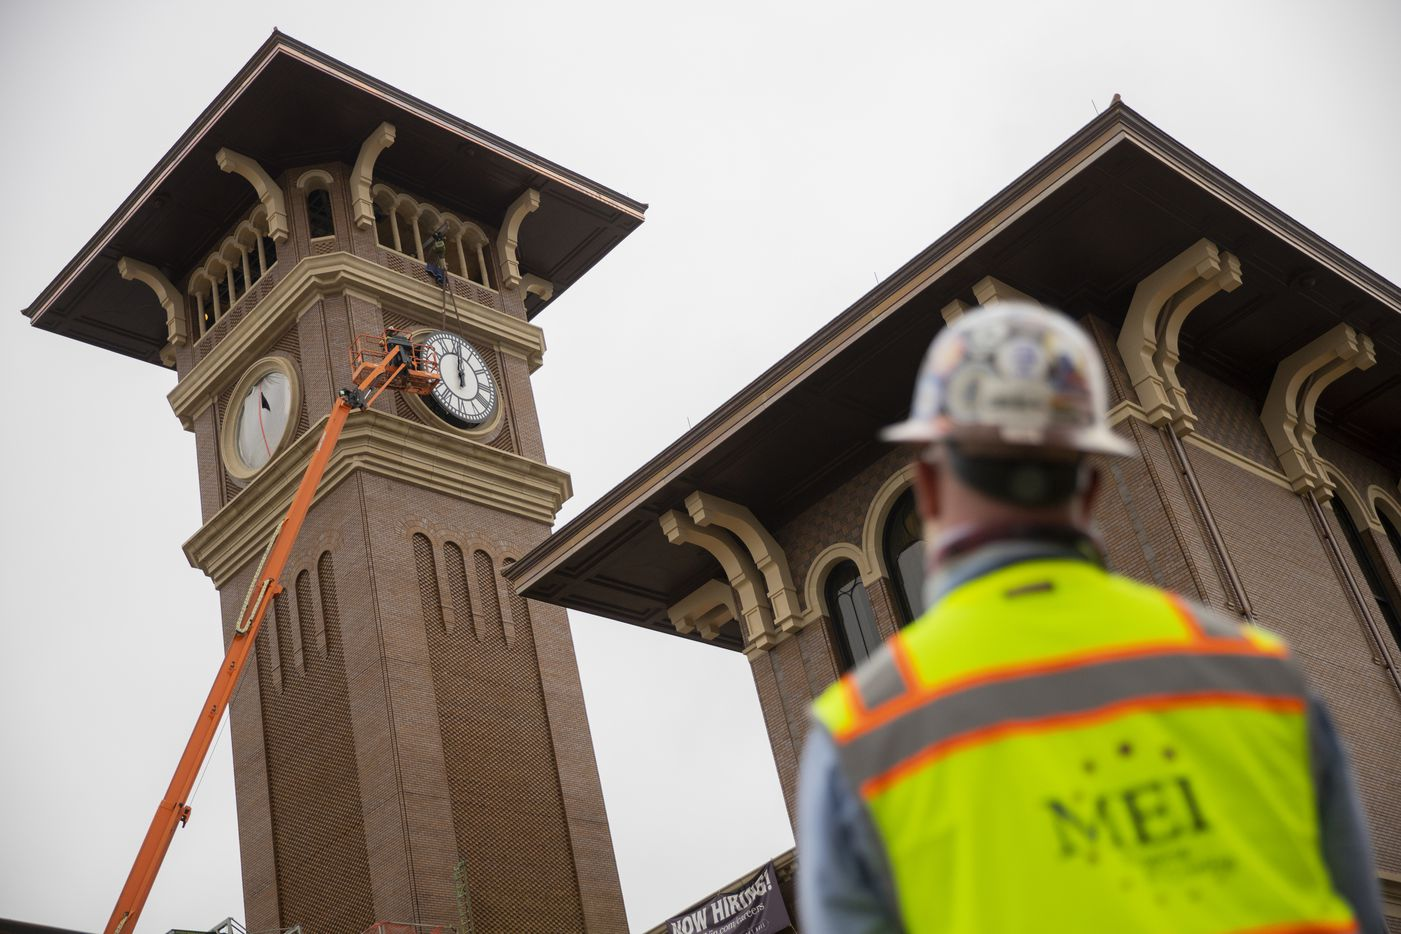 Clint Hoffman, operations manager with MEI Rigging & Crating, watches as his crew works to install a 12-foot glass clock on the Grapevine Main Station's Observation Tower on Sept. 3, 2020 in Grapevine. The clocks designed by Electric Time Company were designed to be compatible with the Texas-Italianate style of the station. (Juan Figueroa/ The Dallas Morning News)